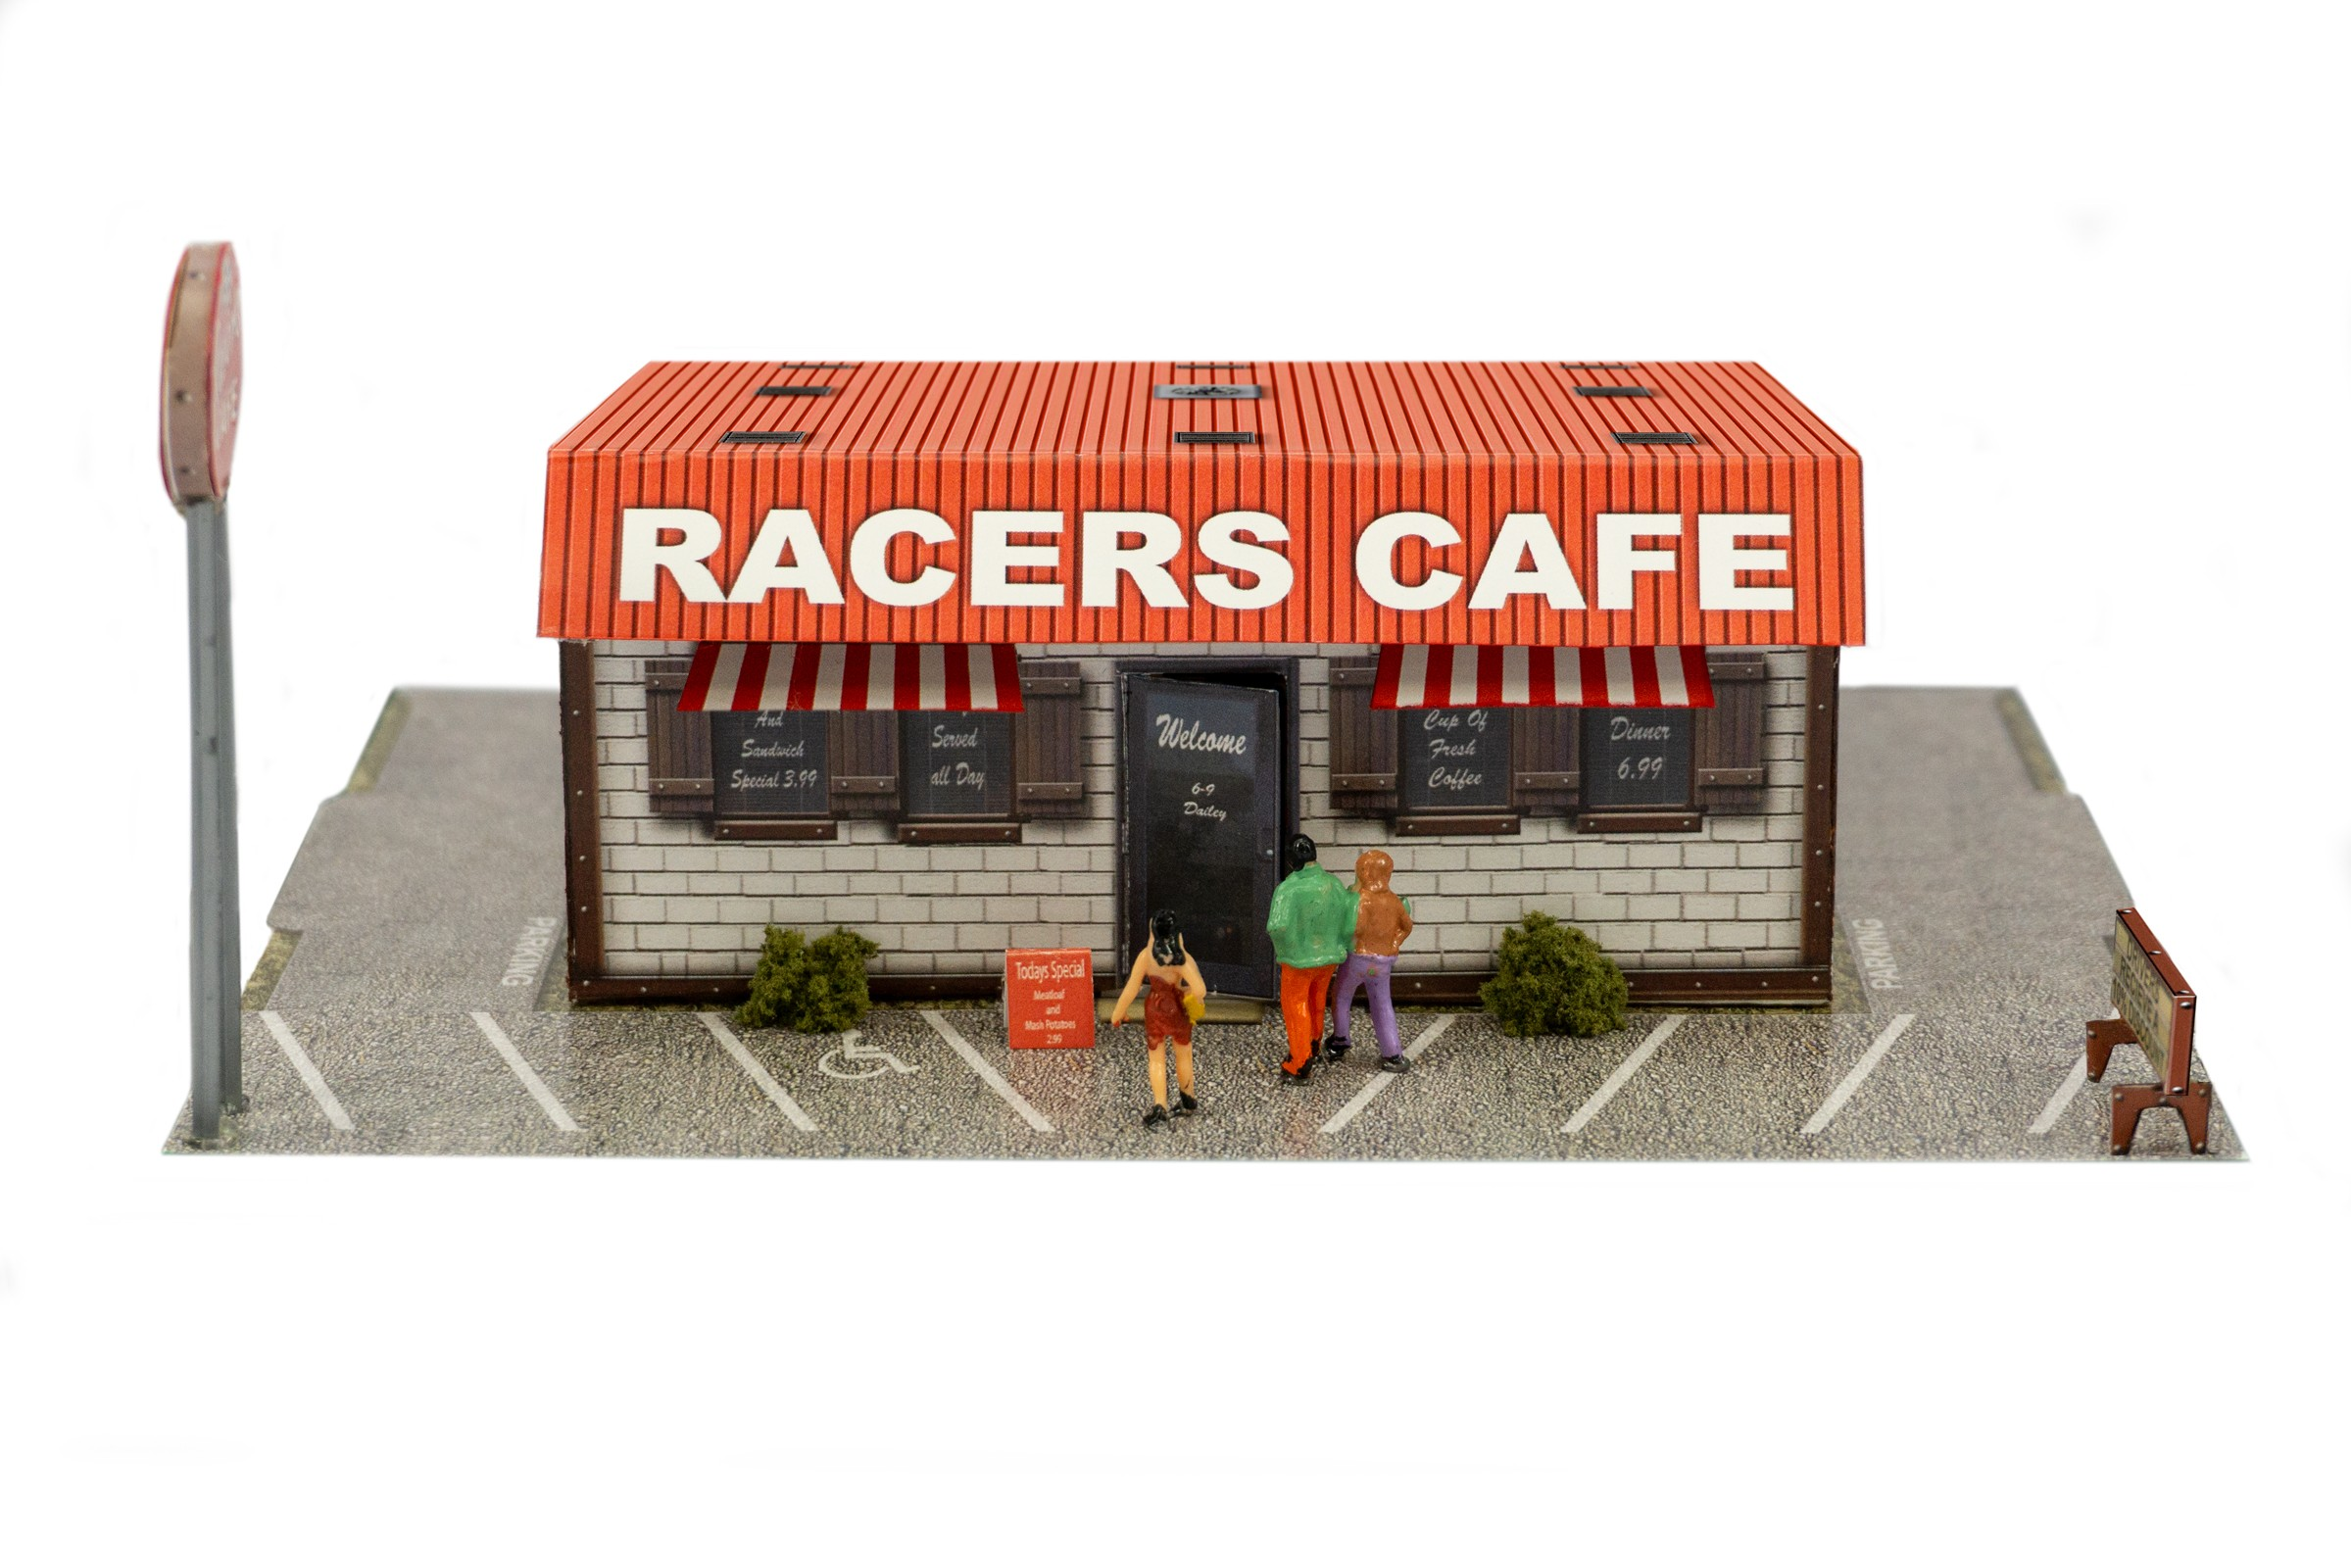 BK 4837 1:48 Scale Raceway Cafe Model Building Kit